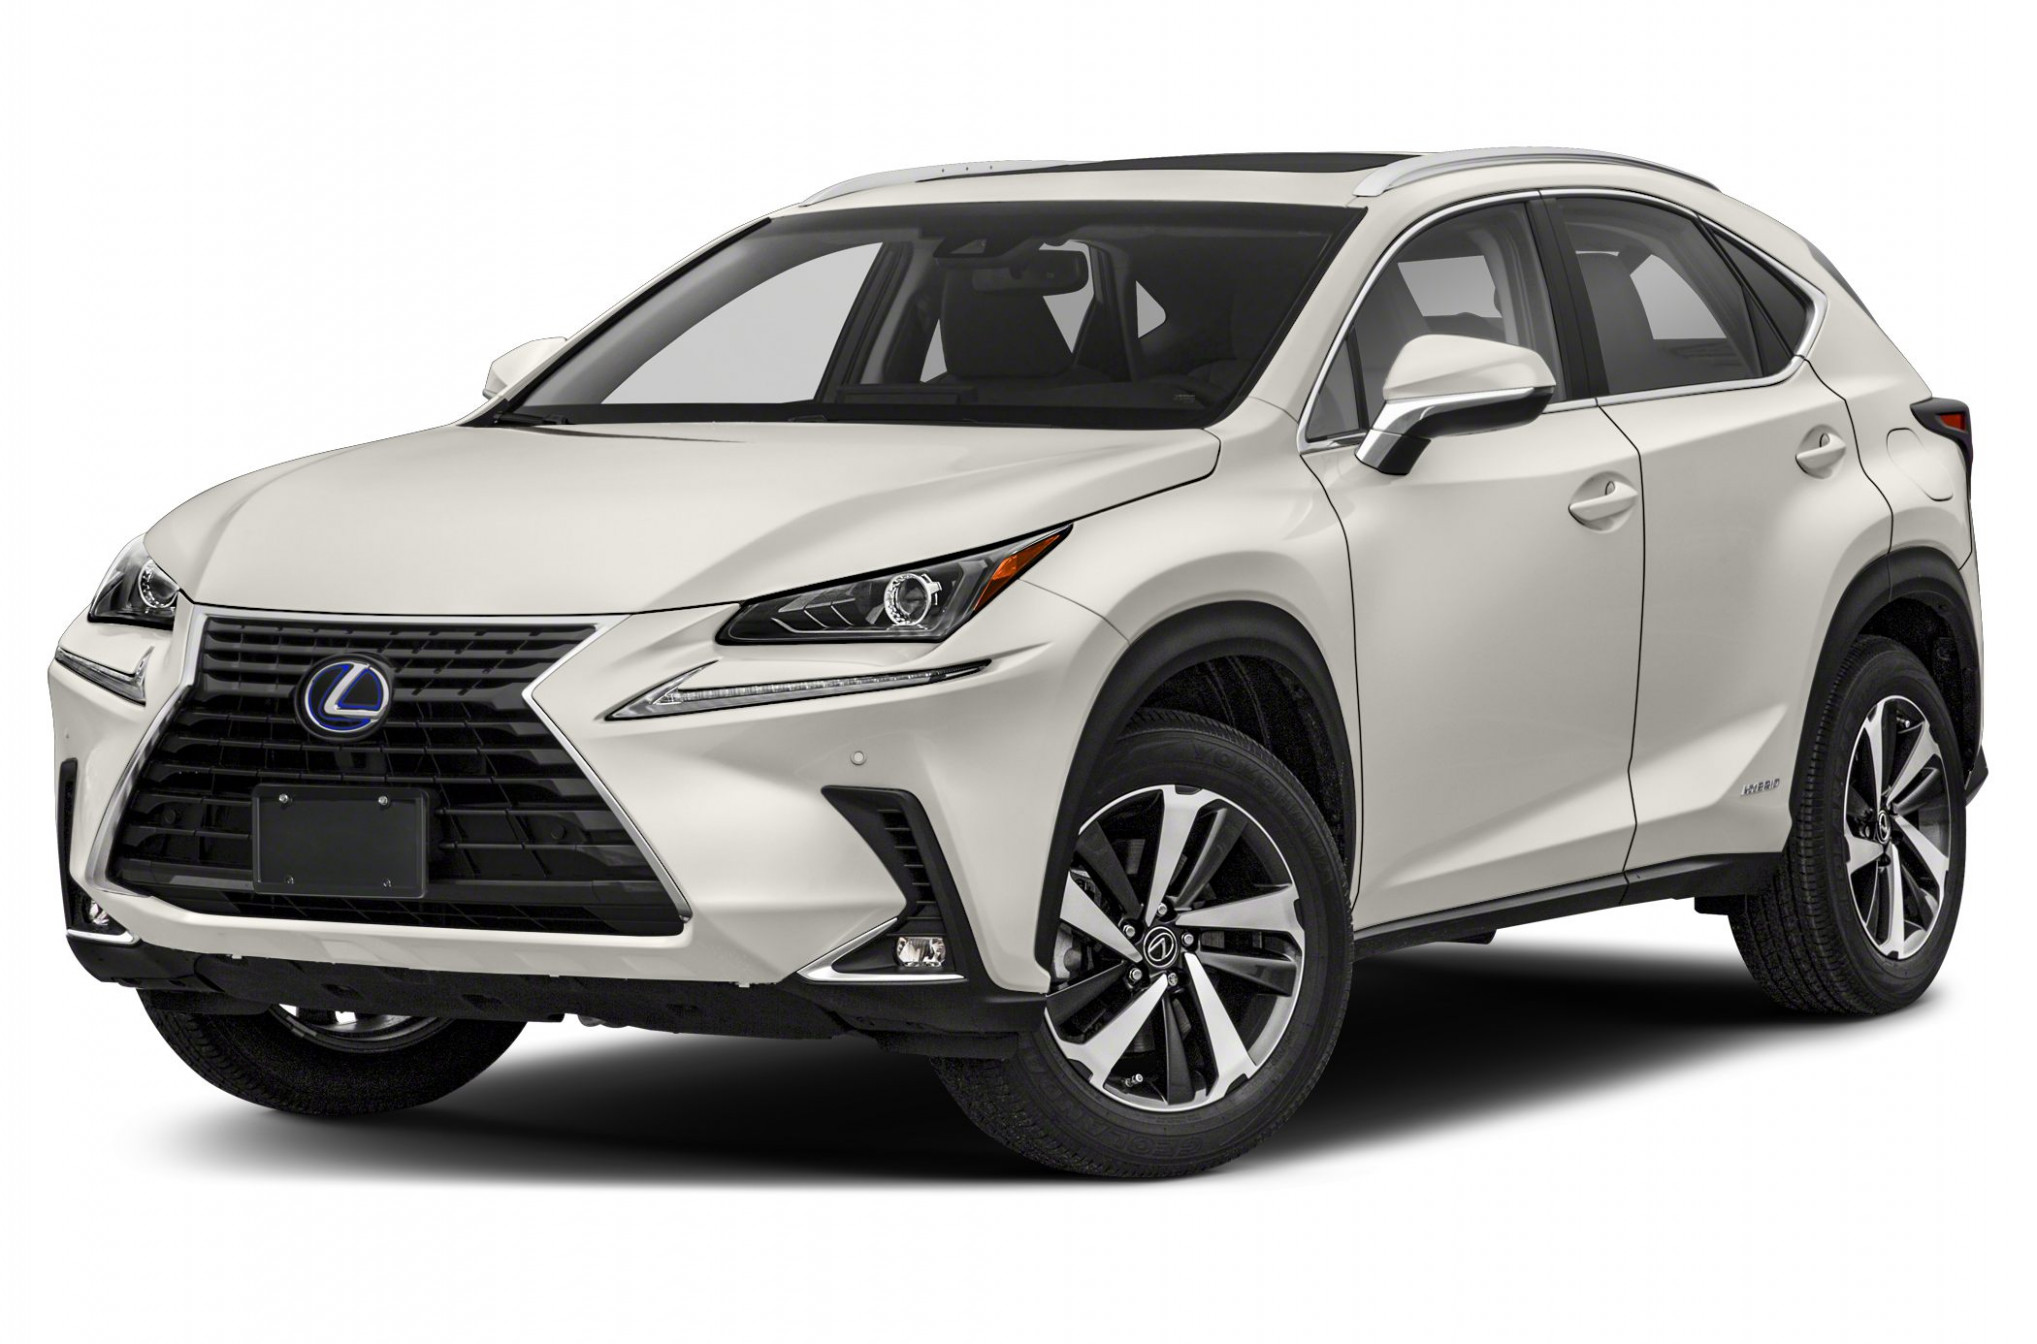 7 Lexus NX 7h Base 7dr All-wheel Drive Specs and Prices - lexus nx 2020 dimensions